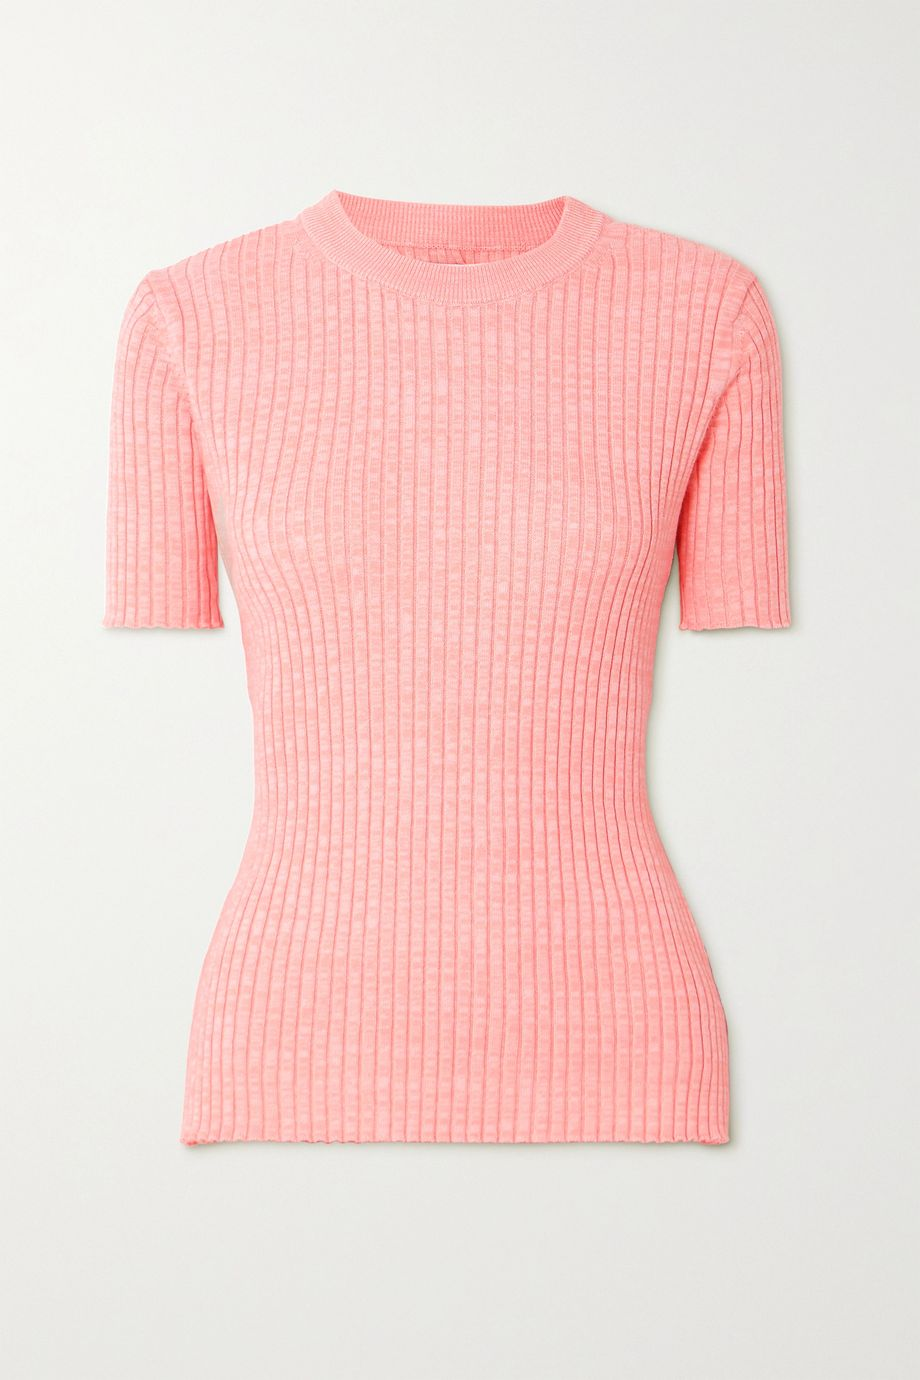 ANNA QUAN Bebe ribbed mélange cotton top